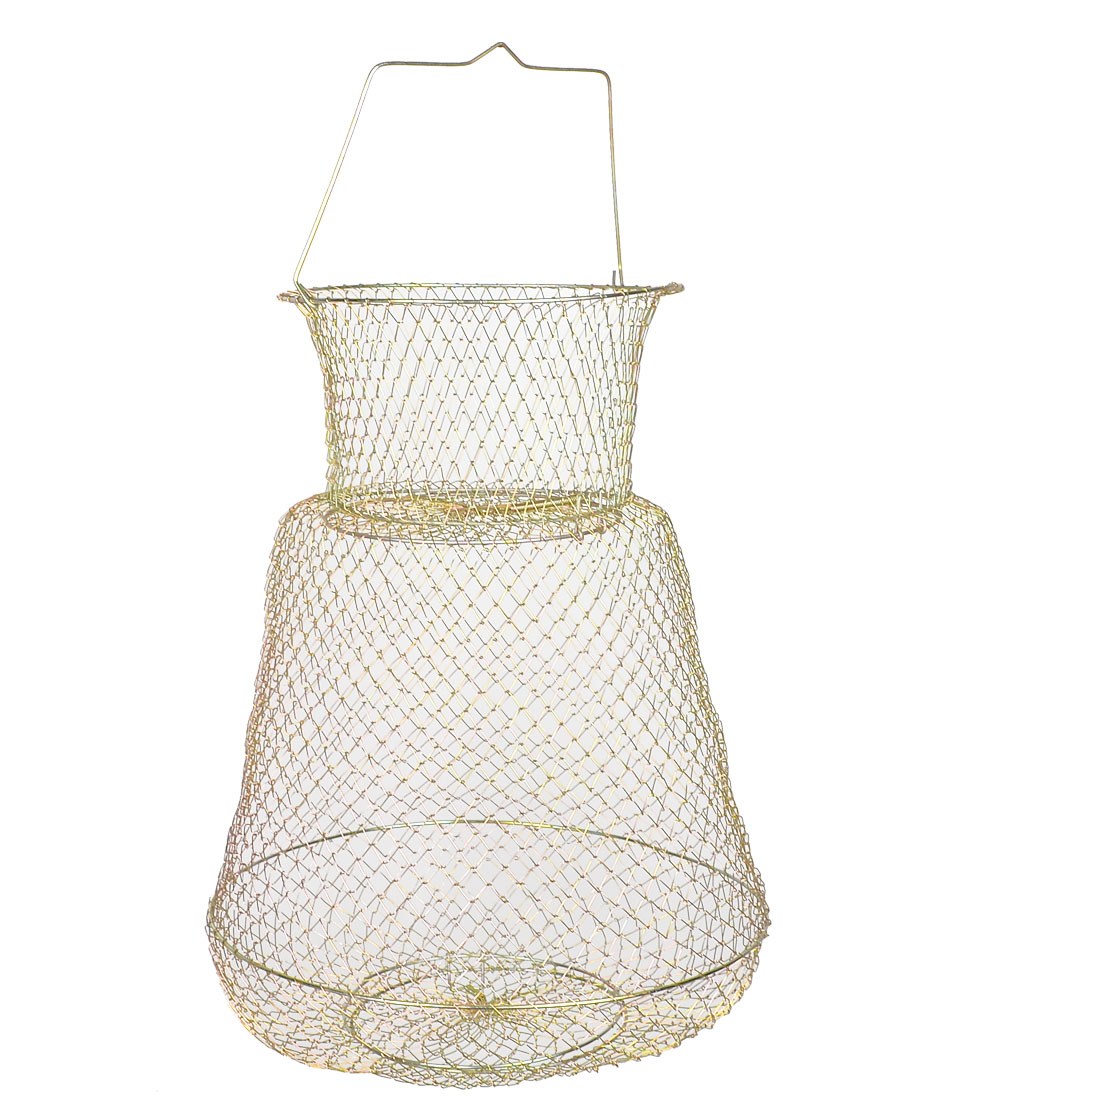 Gold Tone Folding Spring Design 3 Layers Metal Fishing Keep Net Cage 46cm High